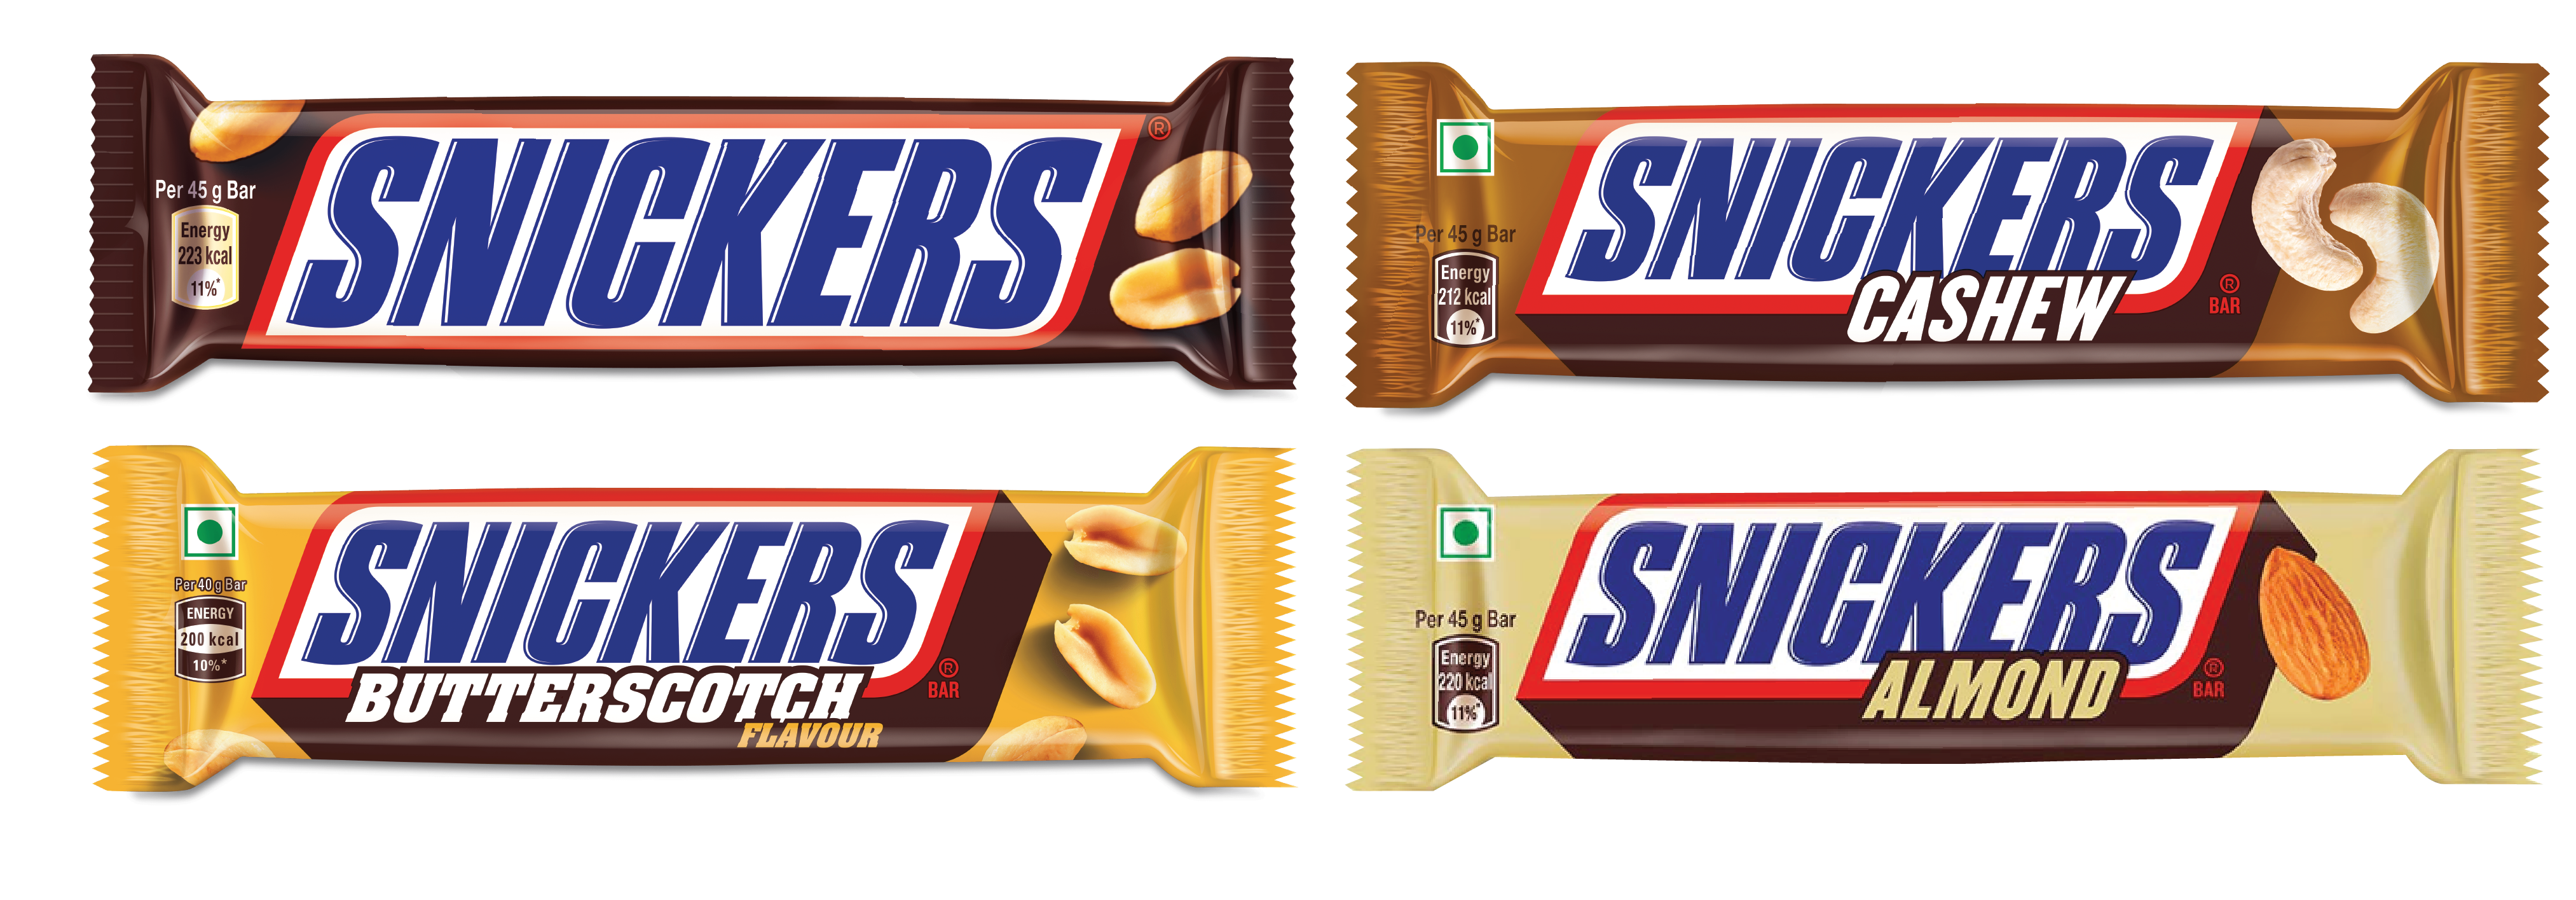 Gift packaging for Snickers